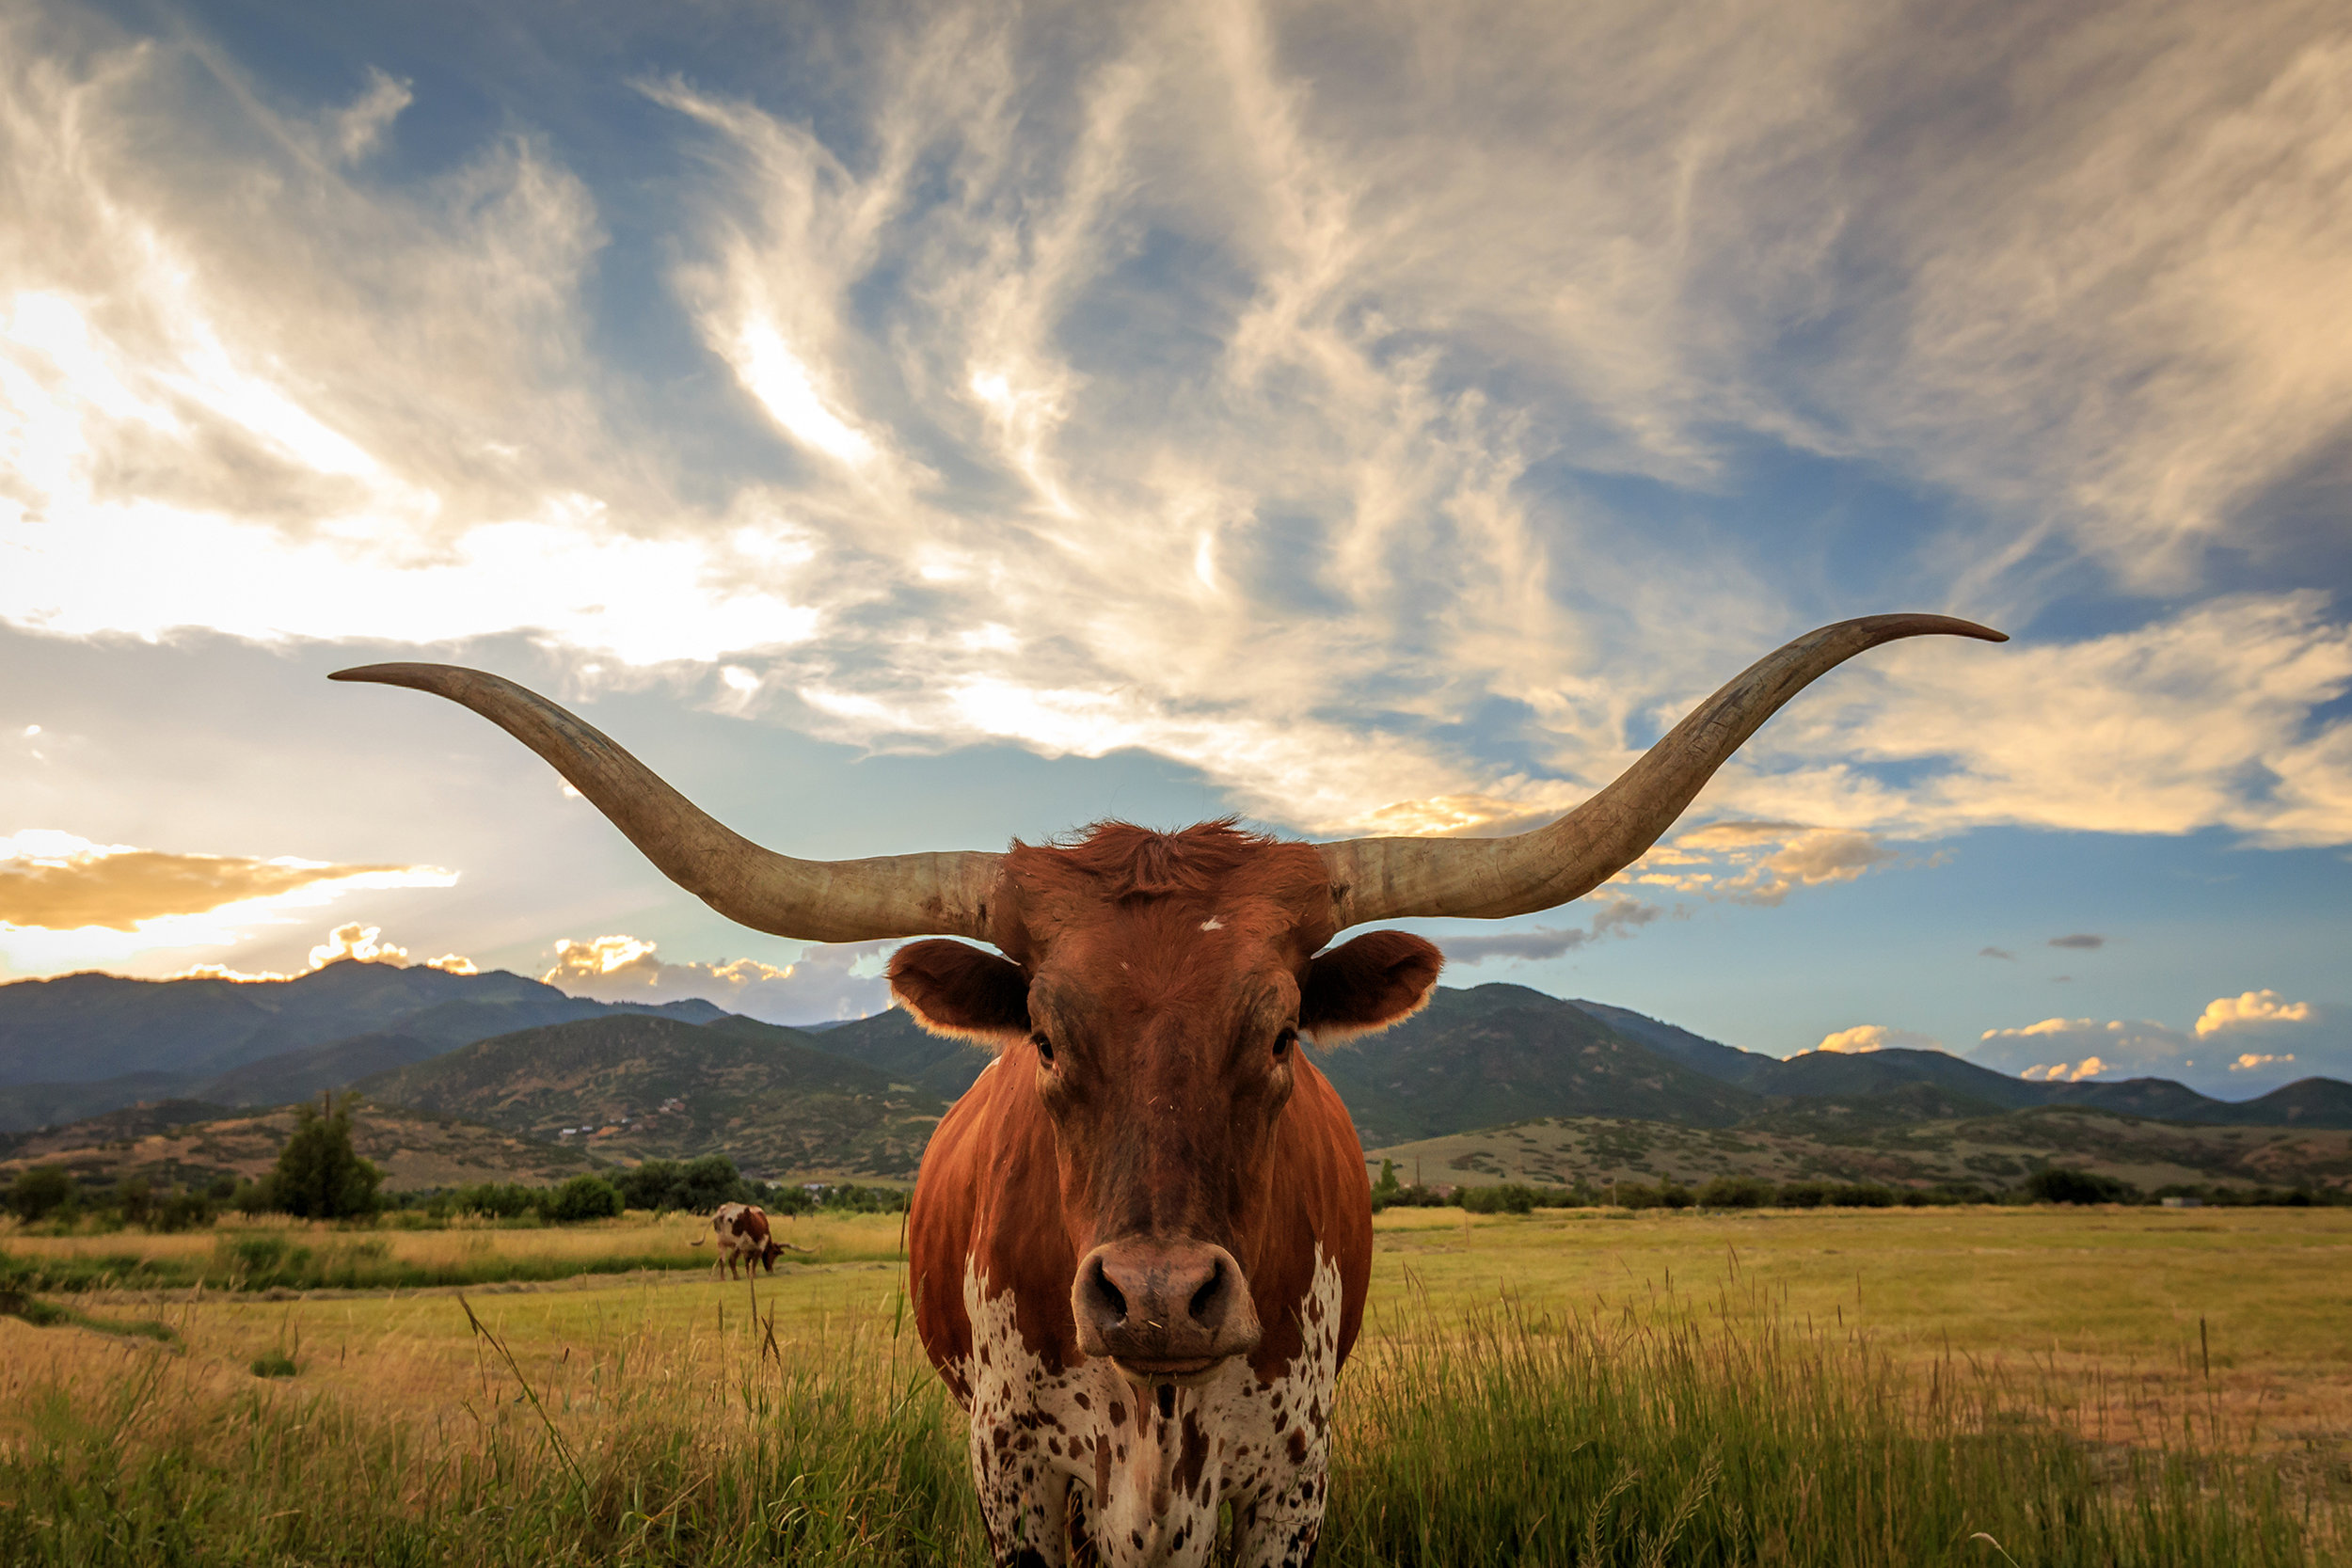 Don't mess with Texas, mystery-poster in the vignette below. Also, this pic was taken in Utah. But I'm informed that that is a real longhorn and he's too cute not to post.